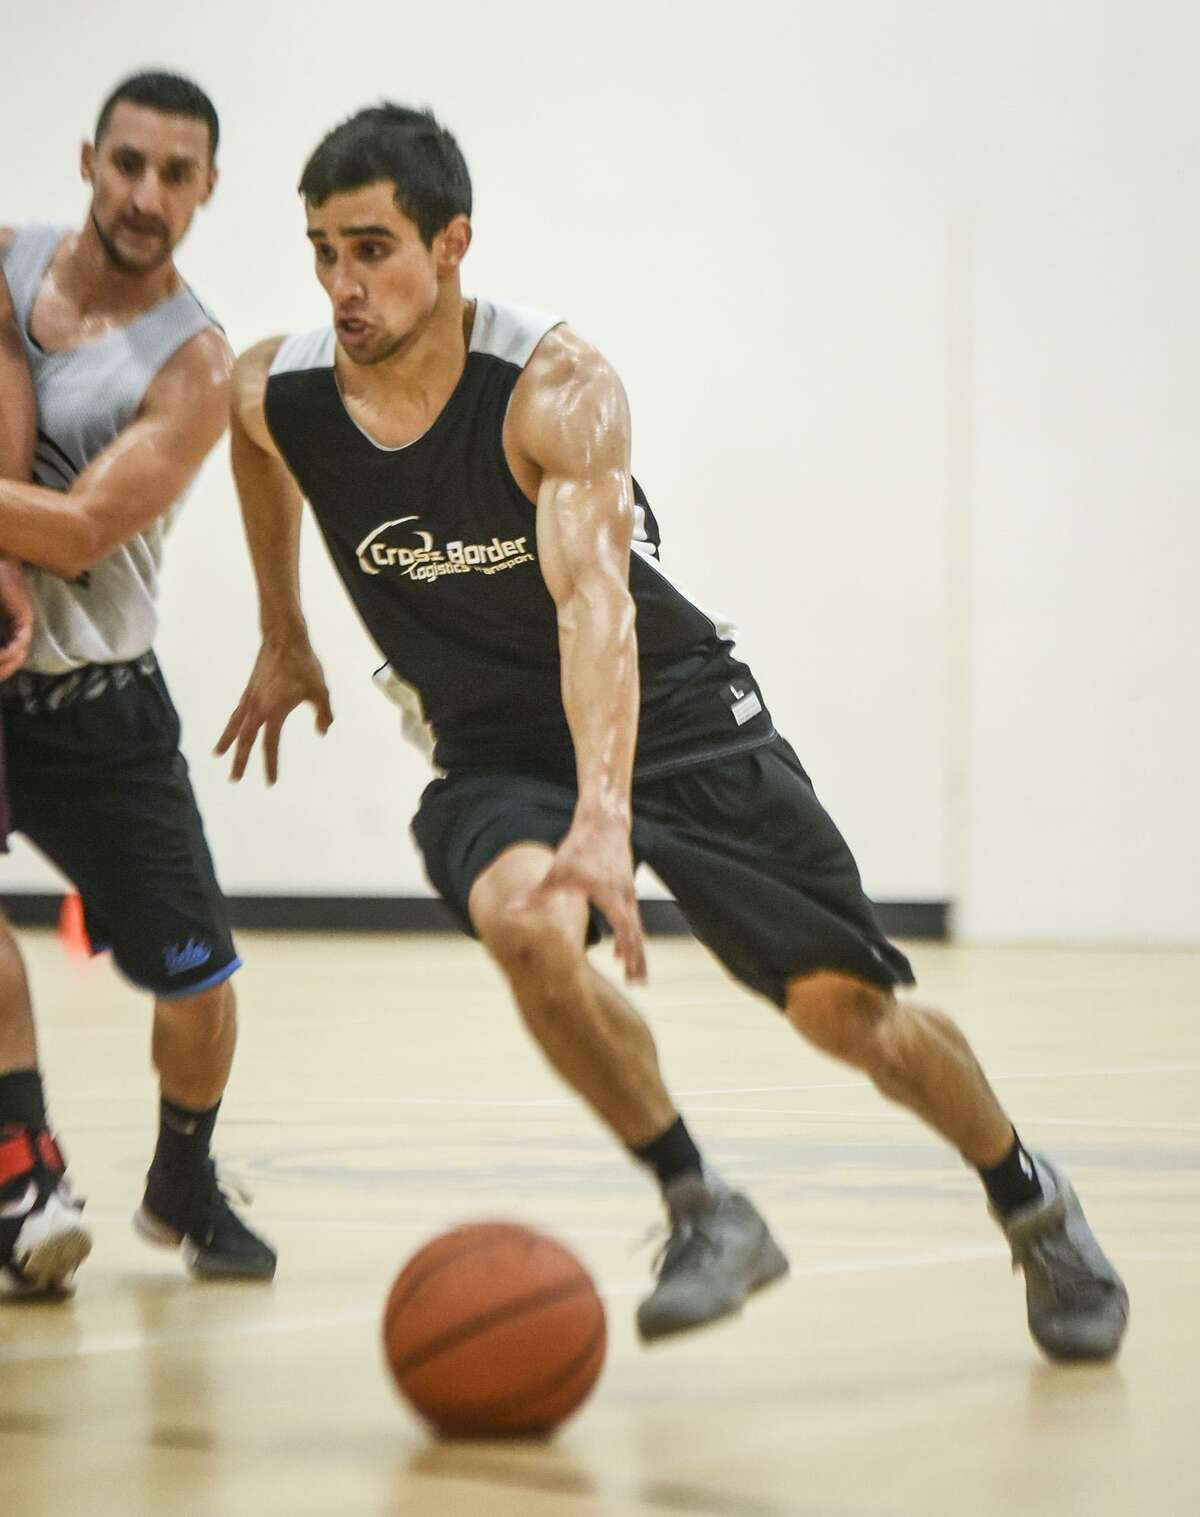 Alexander alumnus Andy Garcia won the MVP award leading Team Pompa to back-to-back Laredo Adult Basketball League Division A championships.